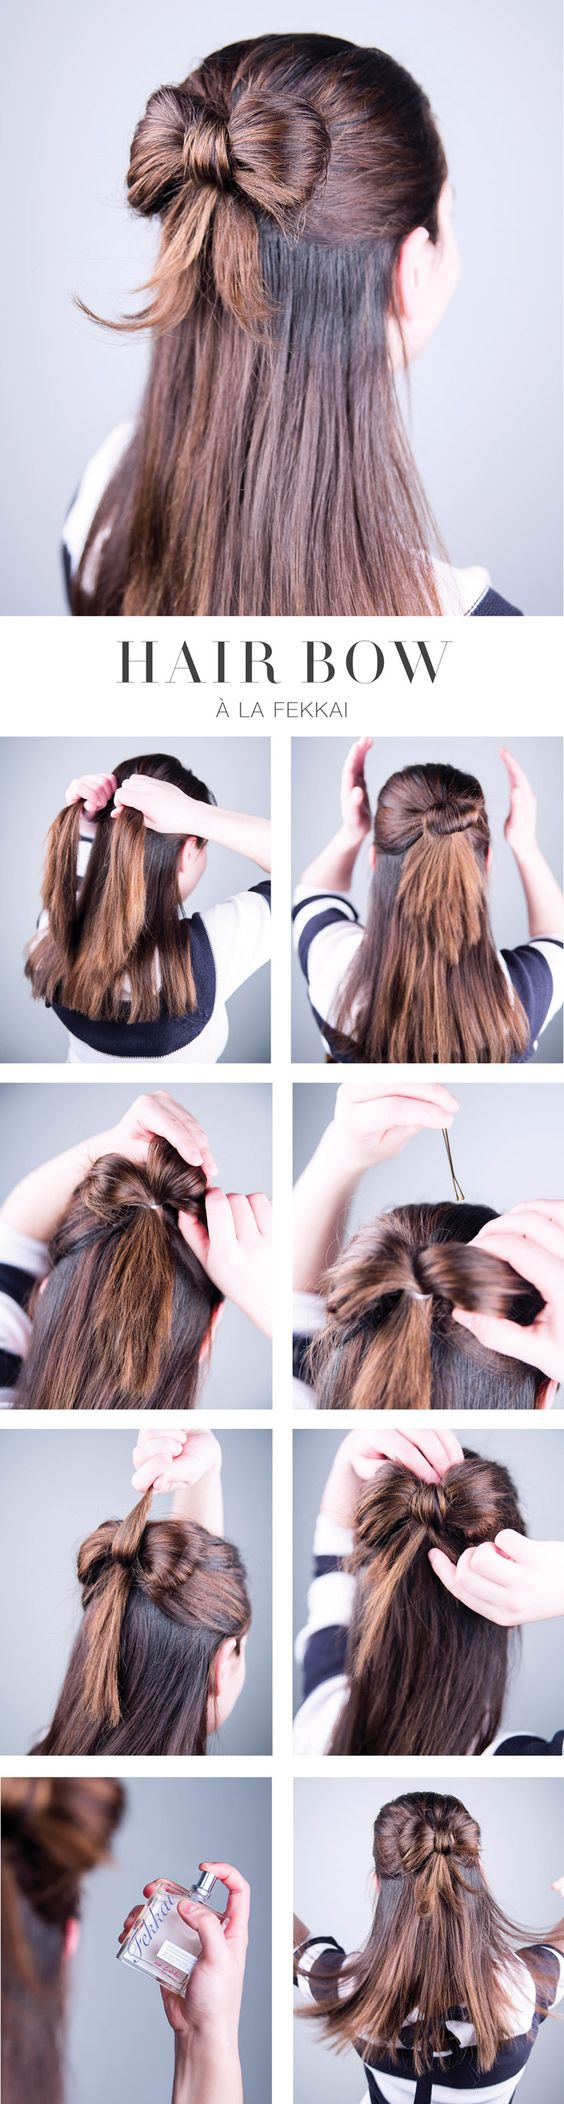 Hair Bow via